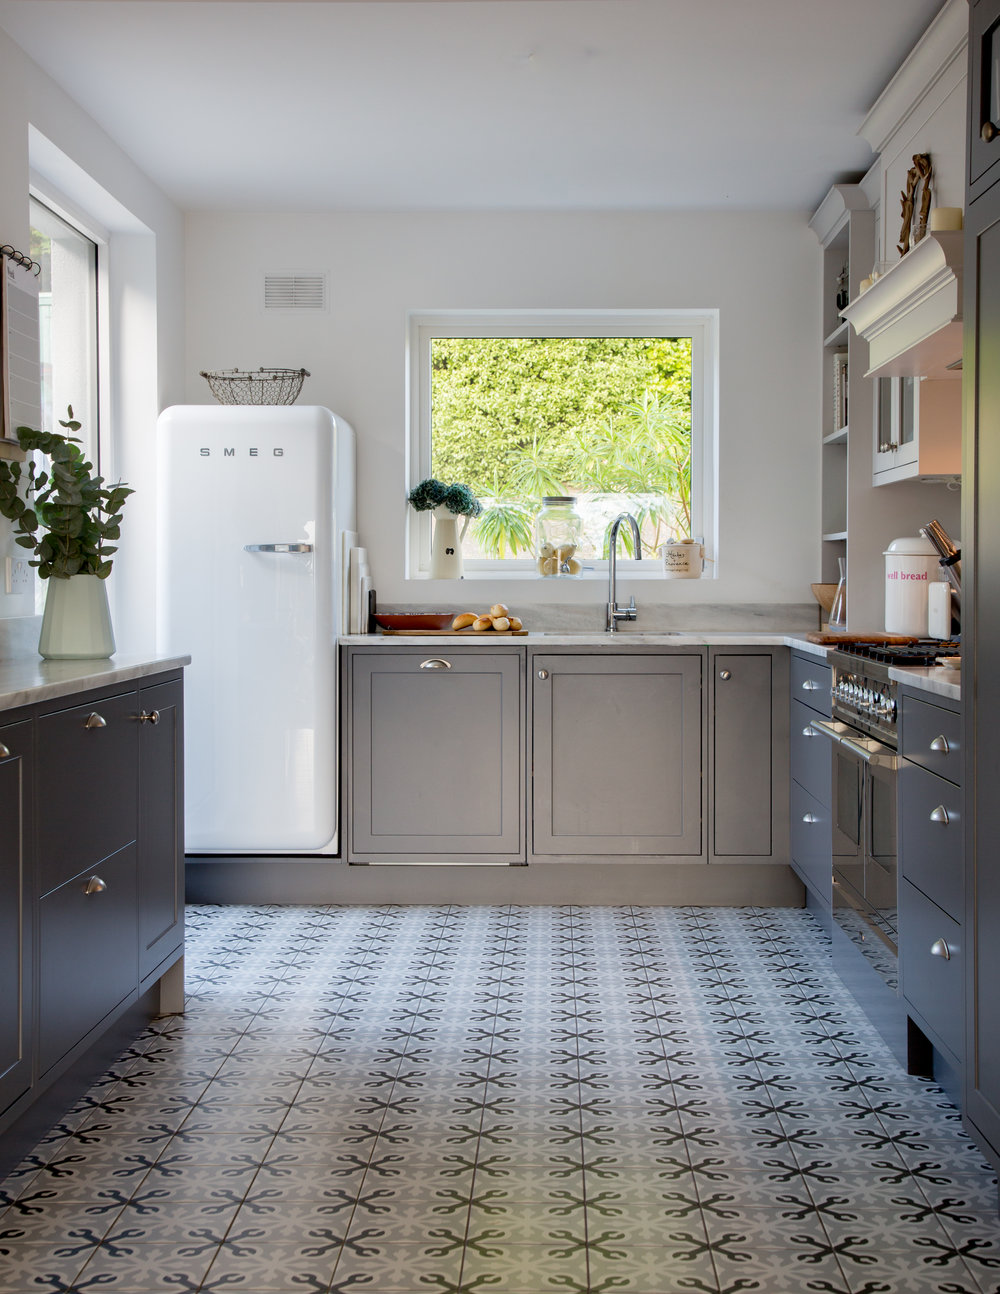 Lamb_Design_Paper_and_Moon_Emma_Lynch_Louise_Dockery_Scandi_French_Danish_homeware_Irish_business_interior_designer_patterned_tiles_kitchen.jpg